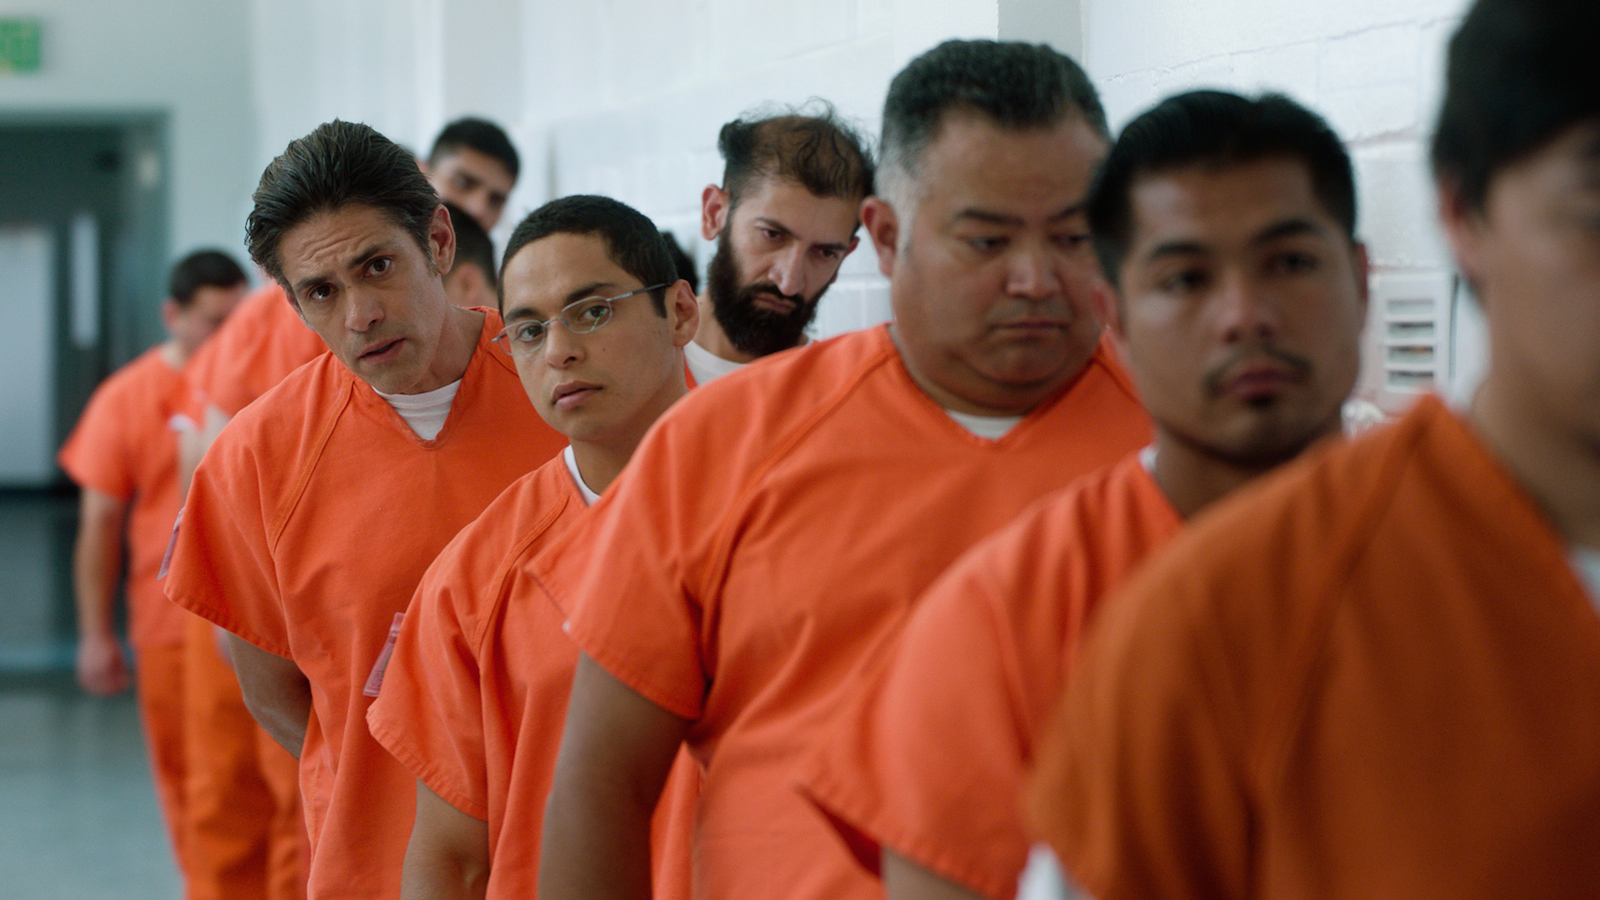 These Are the Must-See Latino & Latin American Movies at SXSW Film Festival